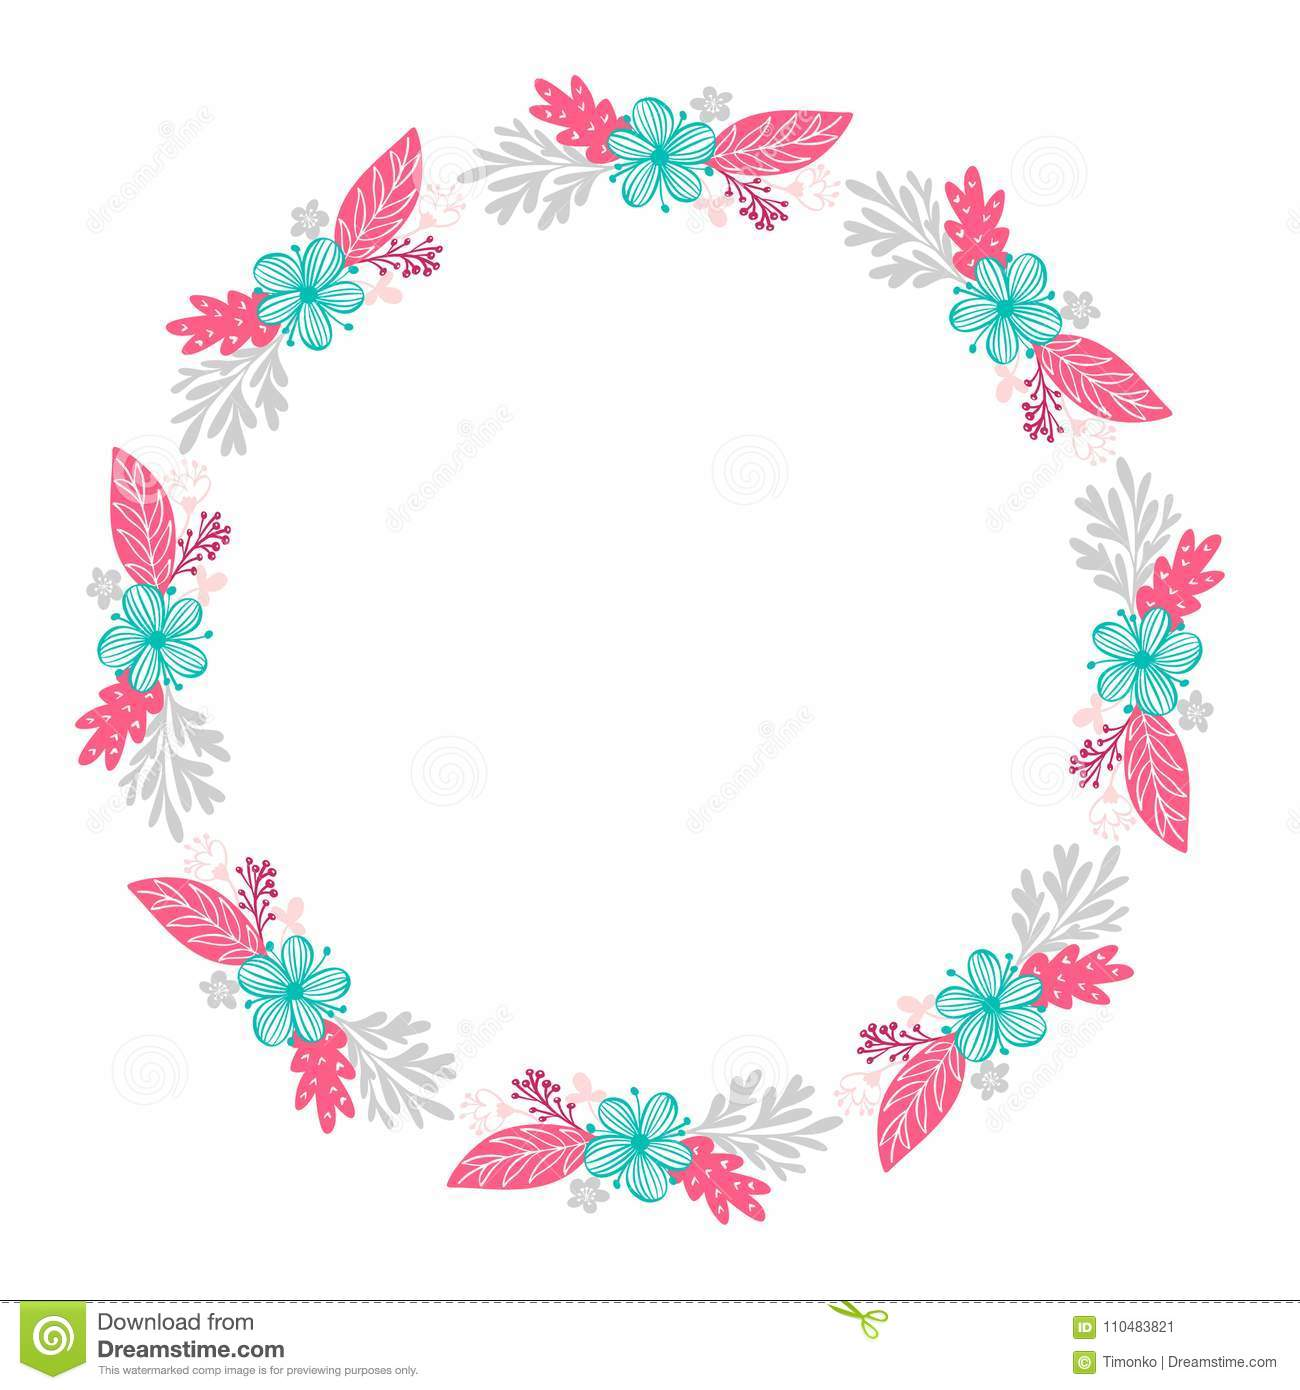 Floral wreath bouquet flowers Botanical elements isolated on white background in Scandinavian style. Hand drawn vector